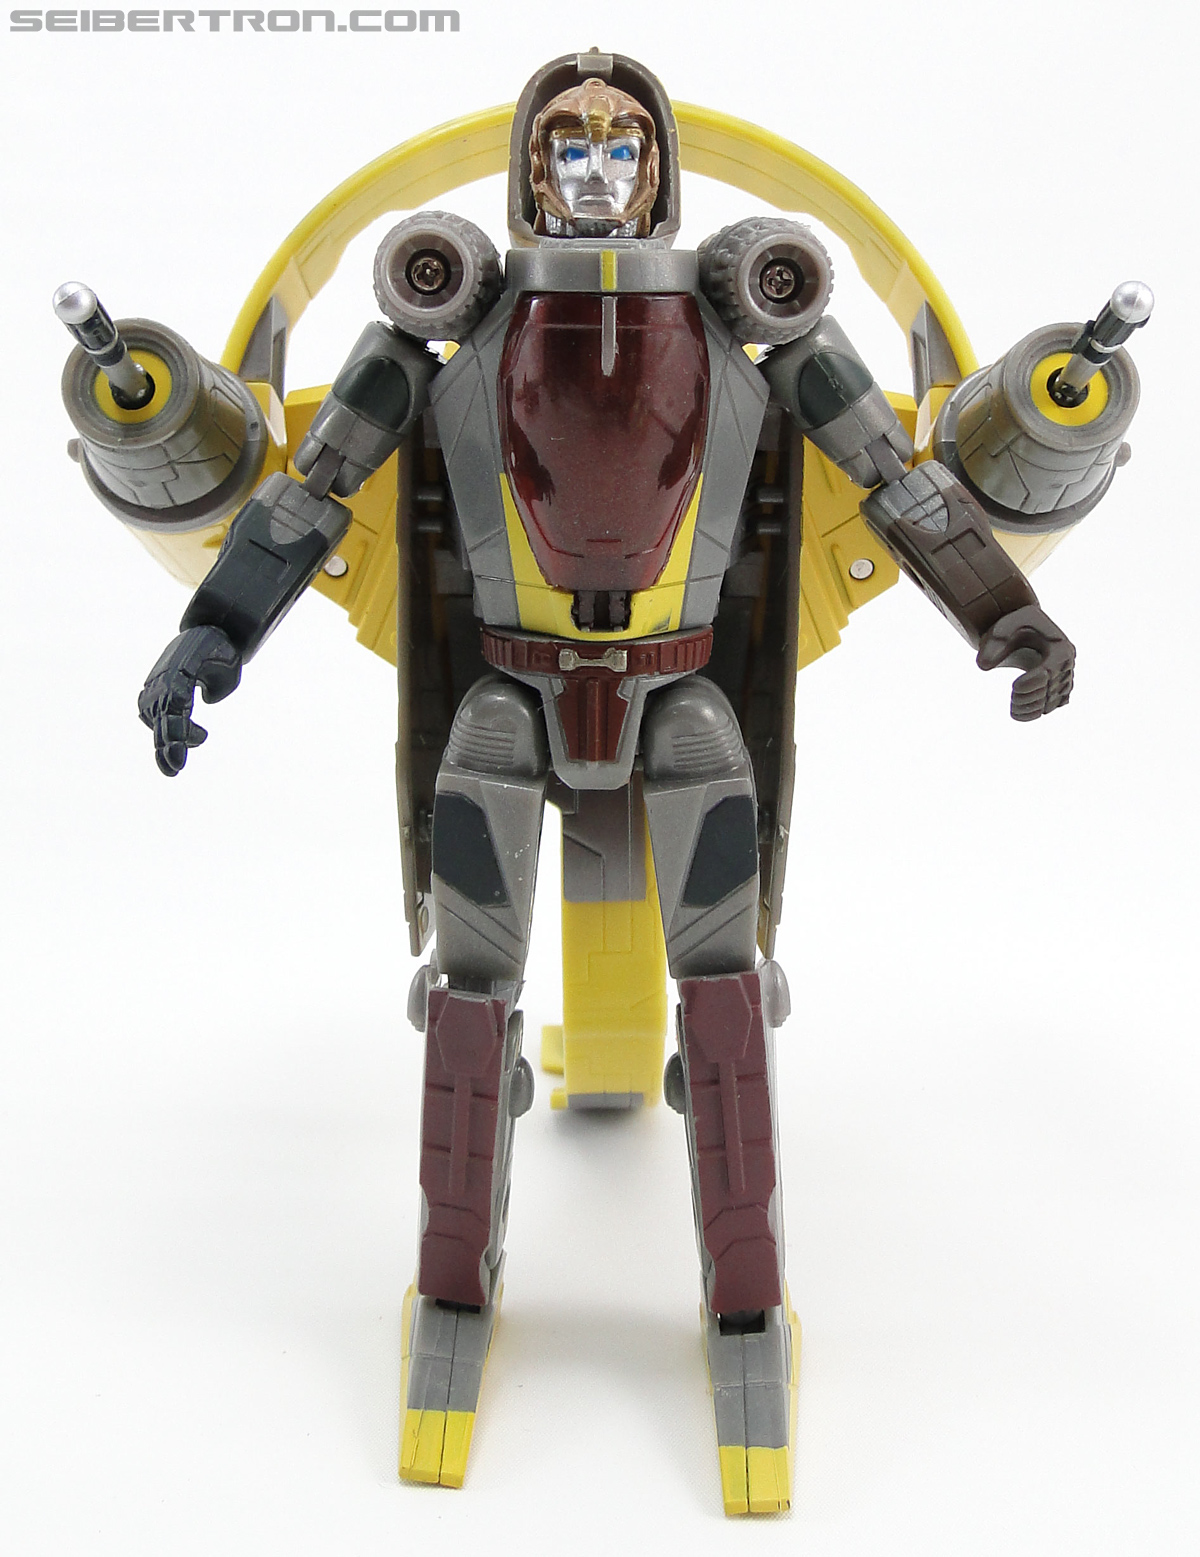 Star Wars Transformers Anakin Skywalker (Jedi Starfighter with Hyperspace Docking Ring) (Image #44 of 131)